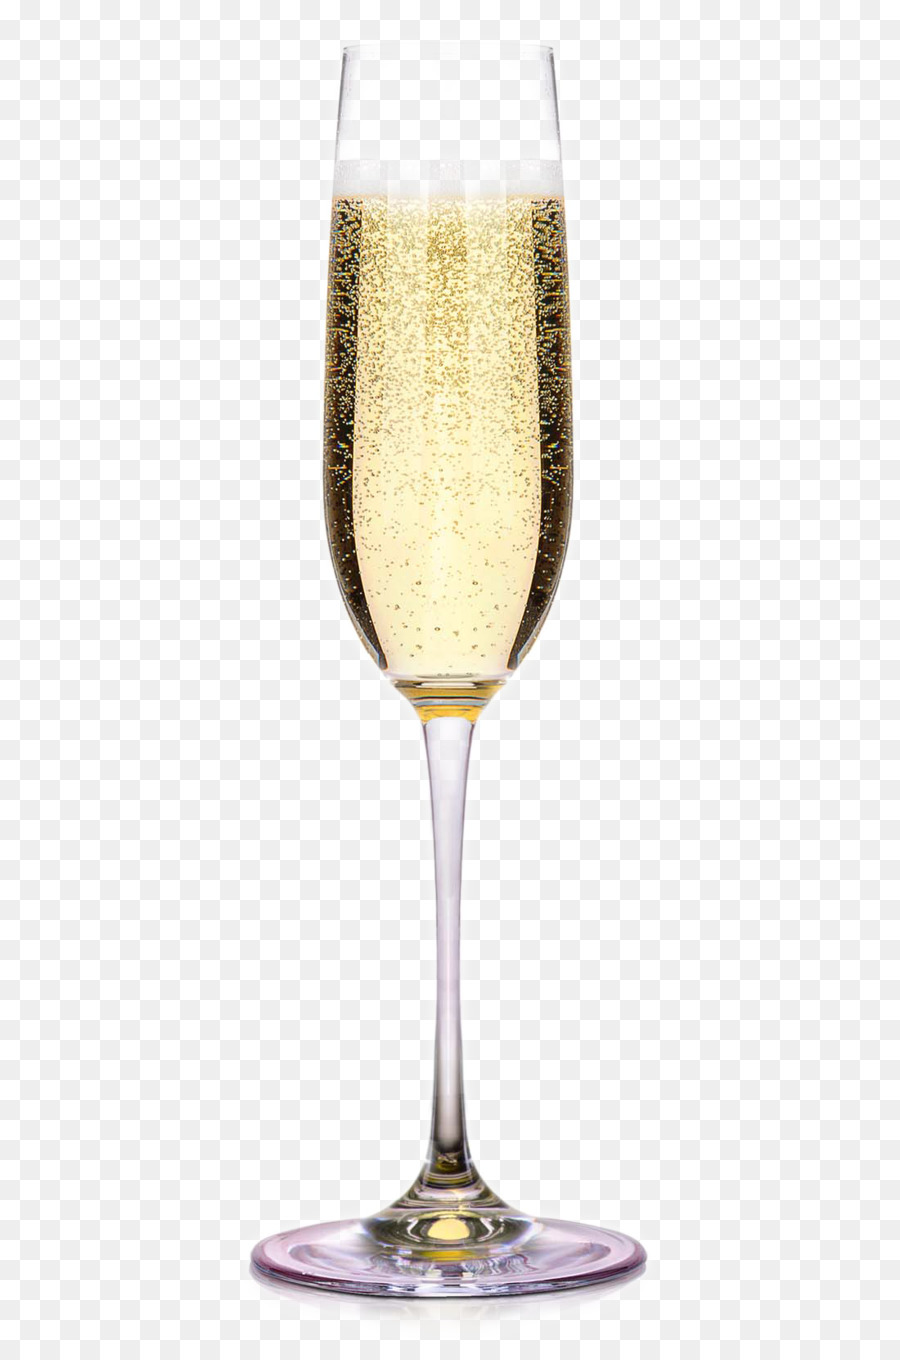 Champagne sparkling wine png. Champaign clipart mimosa glass